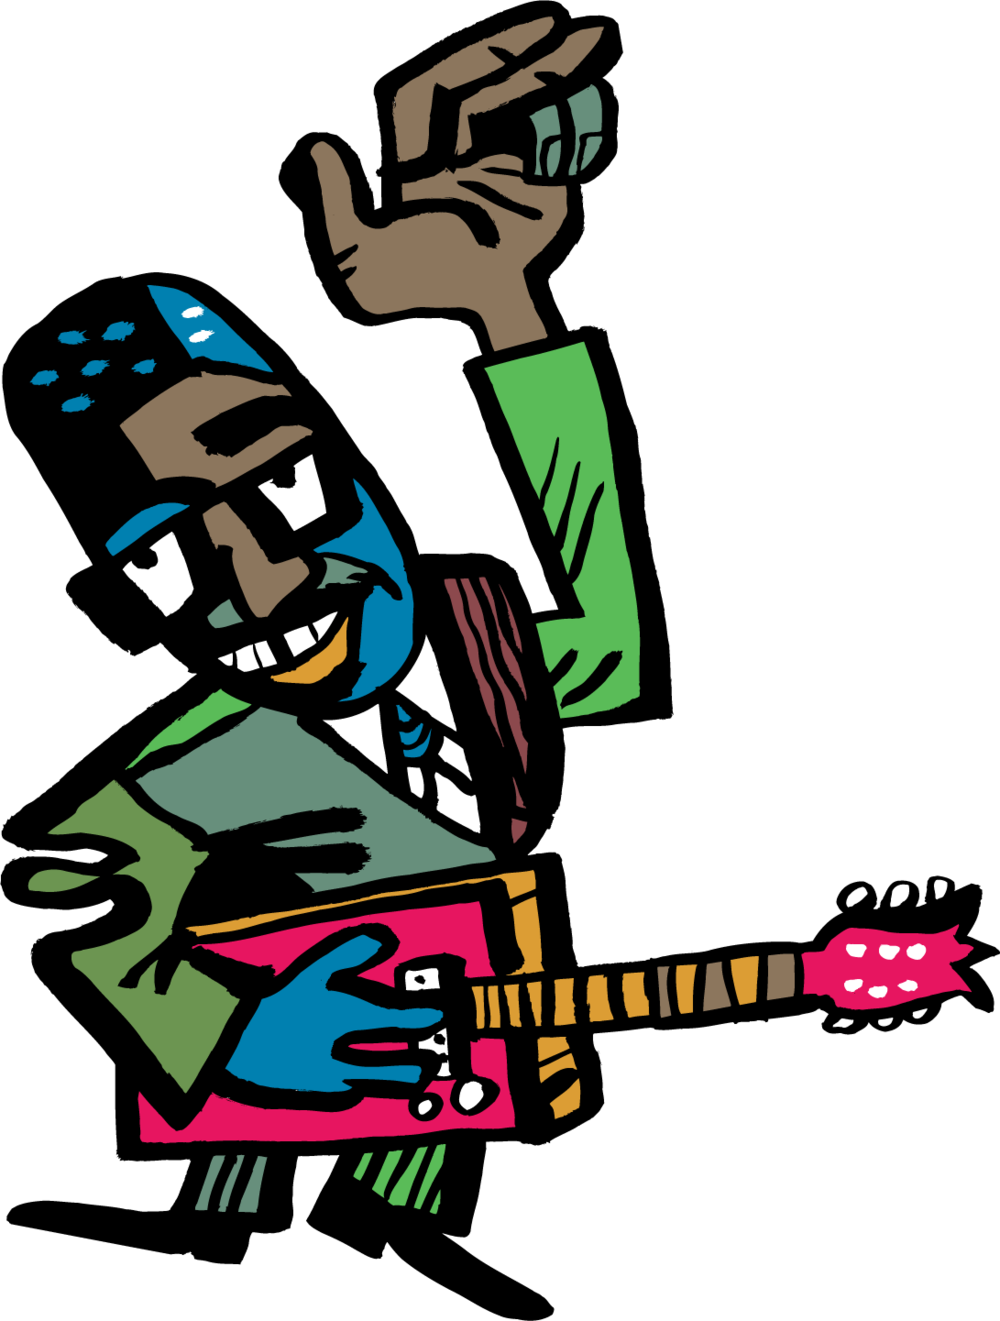 Bo Diddley, The Originator